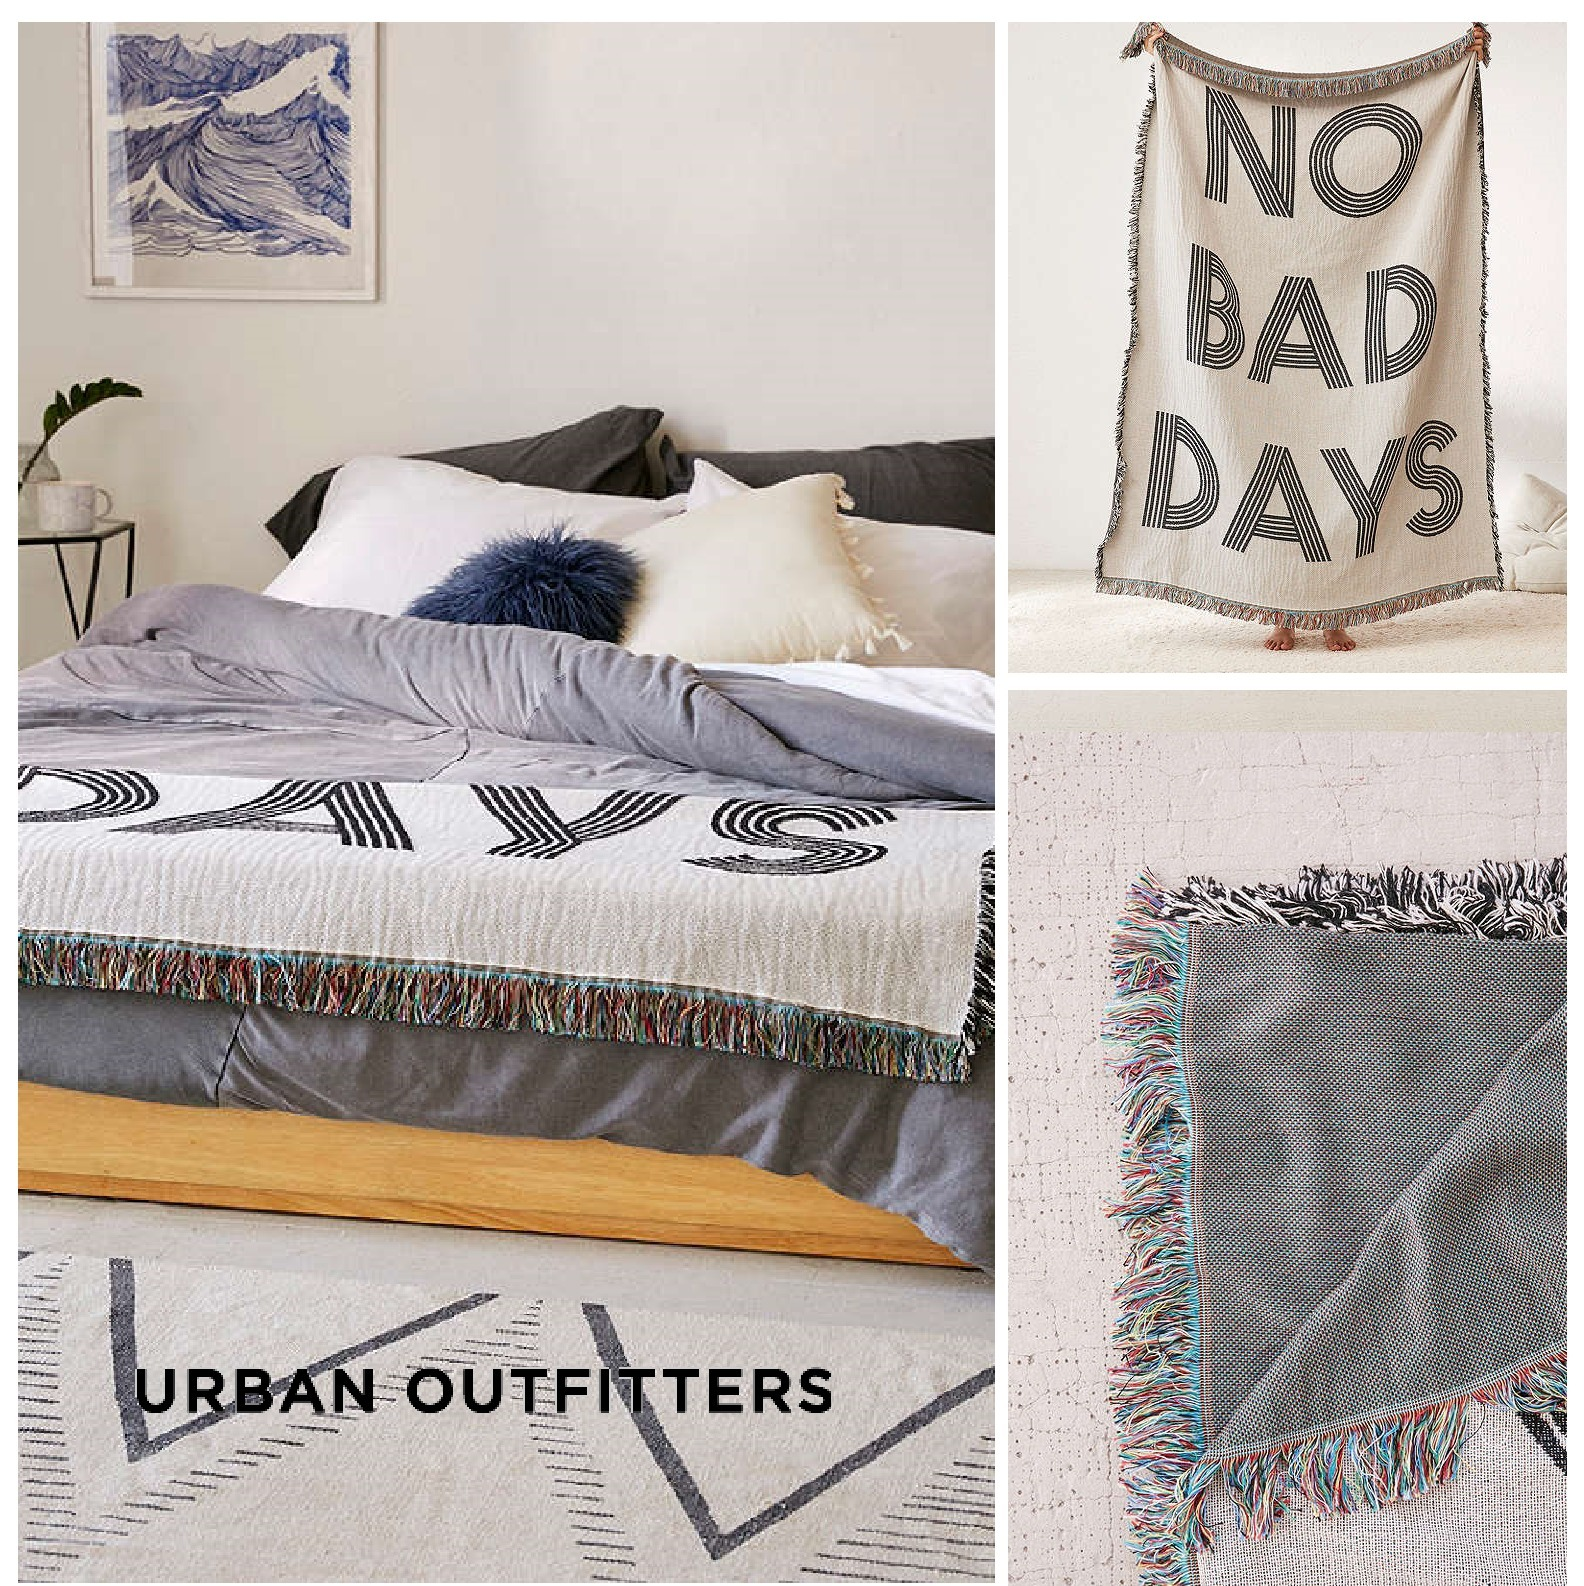 Urban Outfitters☆No Bad Days Woven Throw Blanket